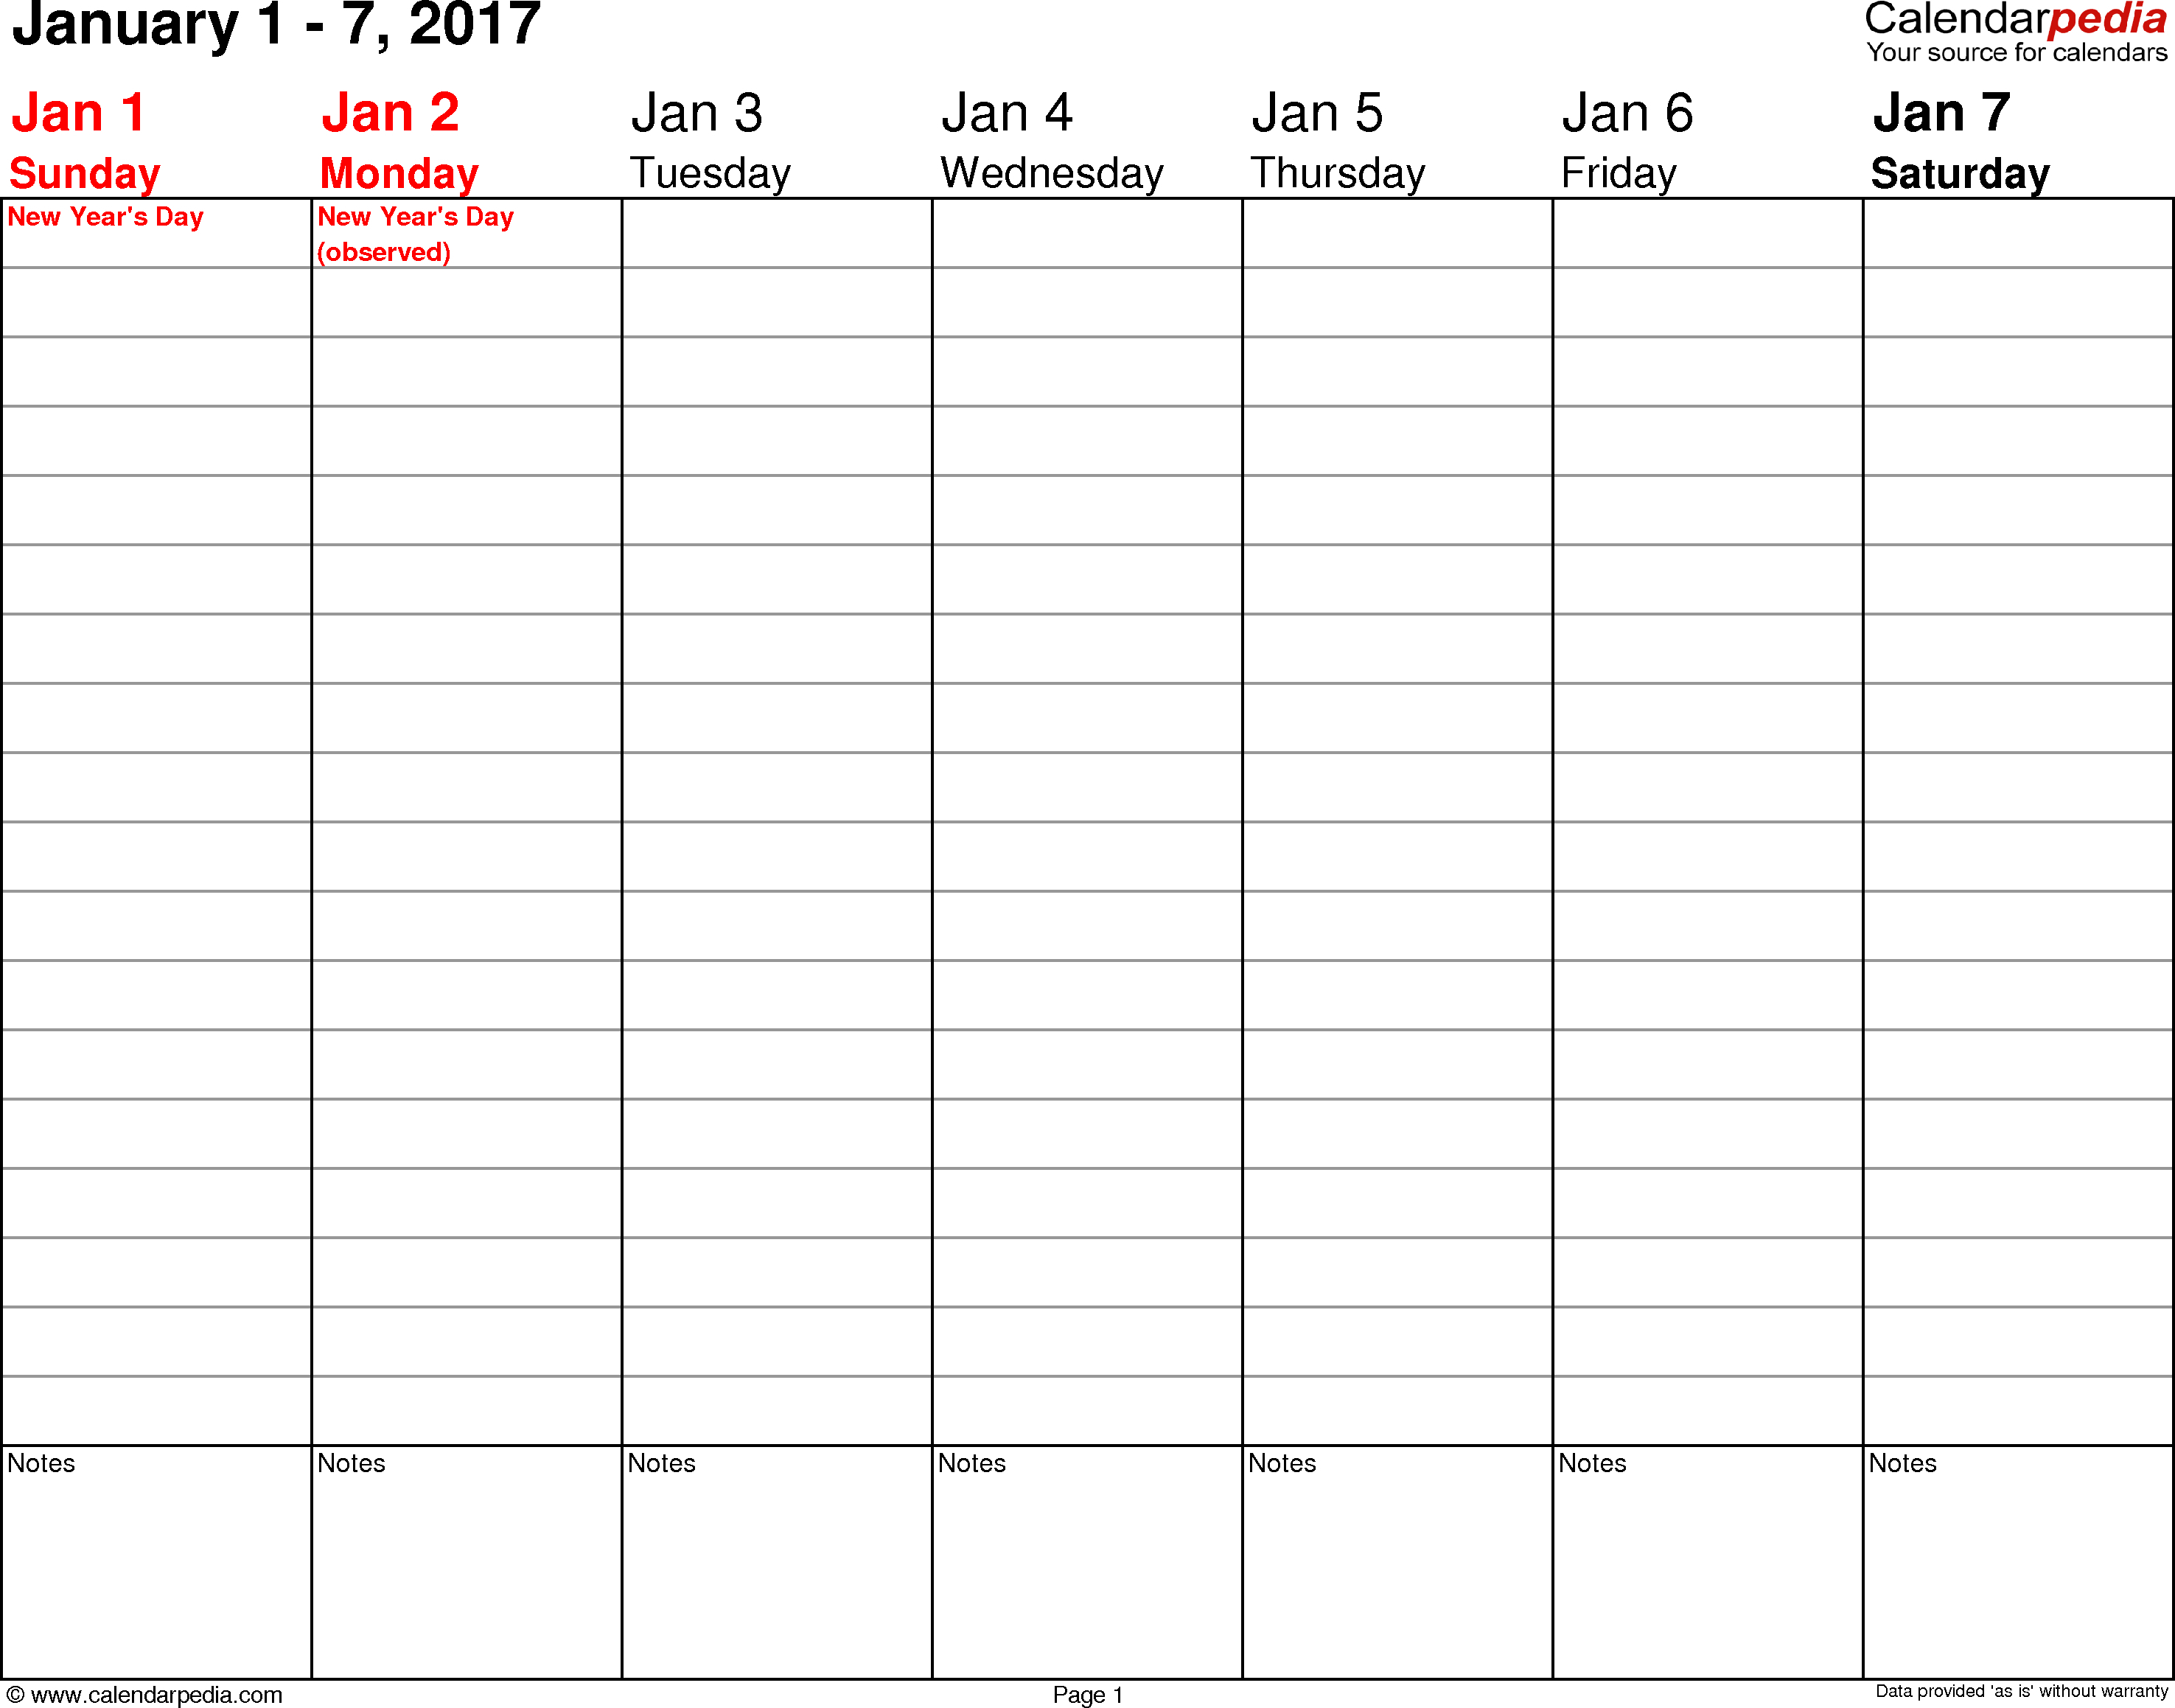 Free Printable Weekly Planner 2017 | Room Surf for Daily Planner Template Printable Free